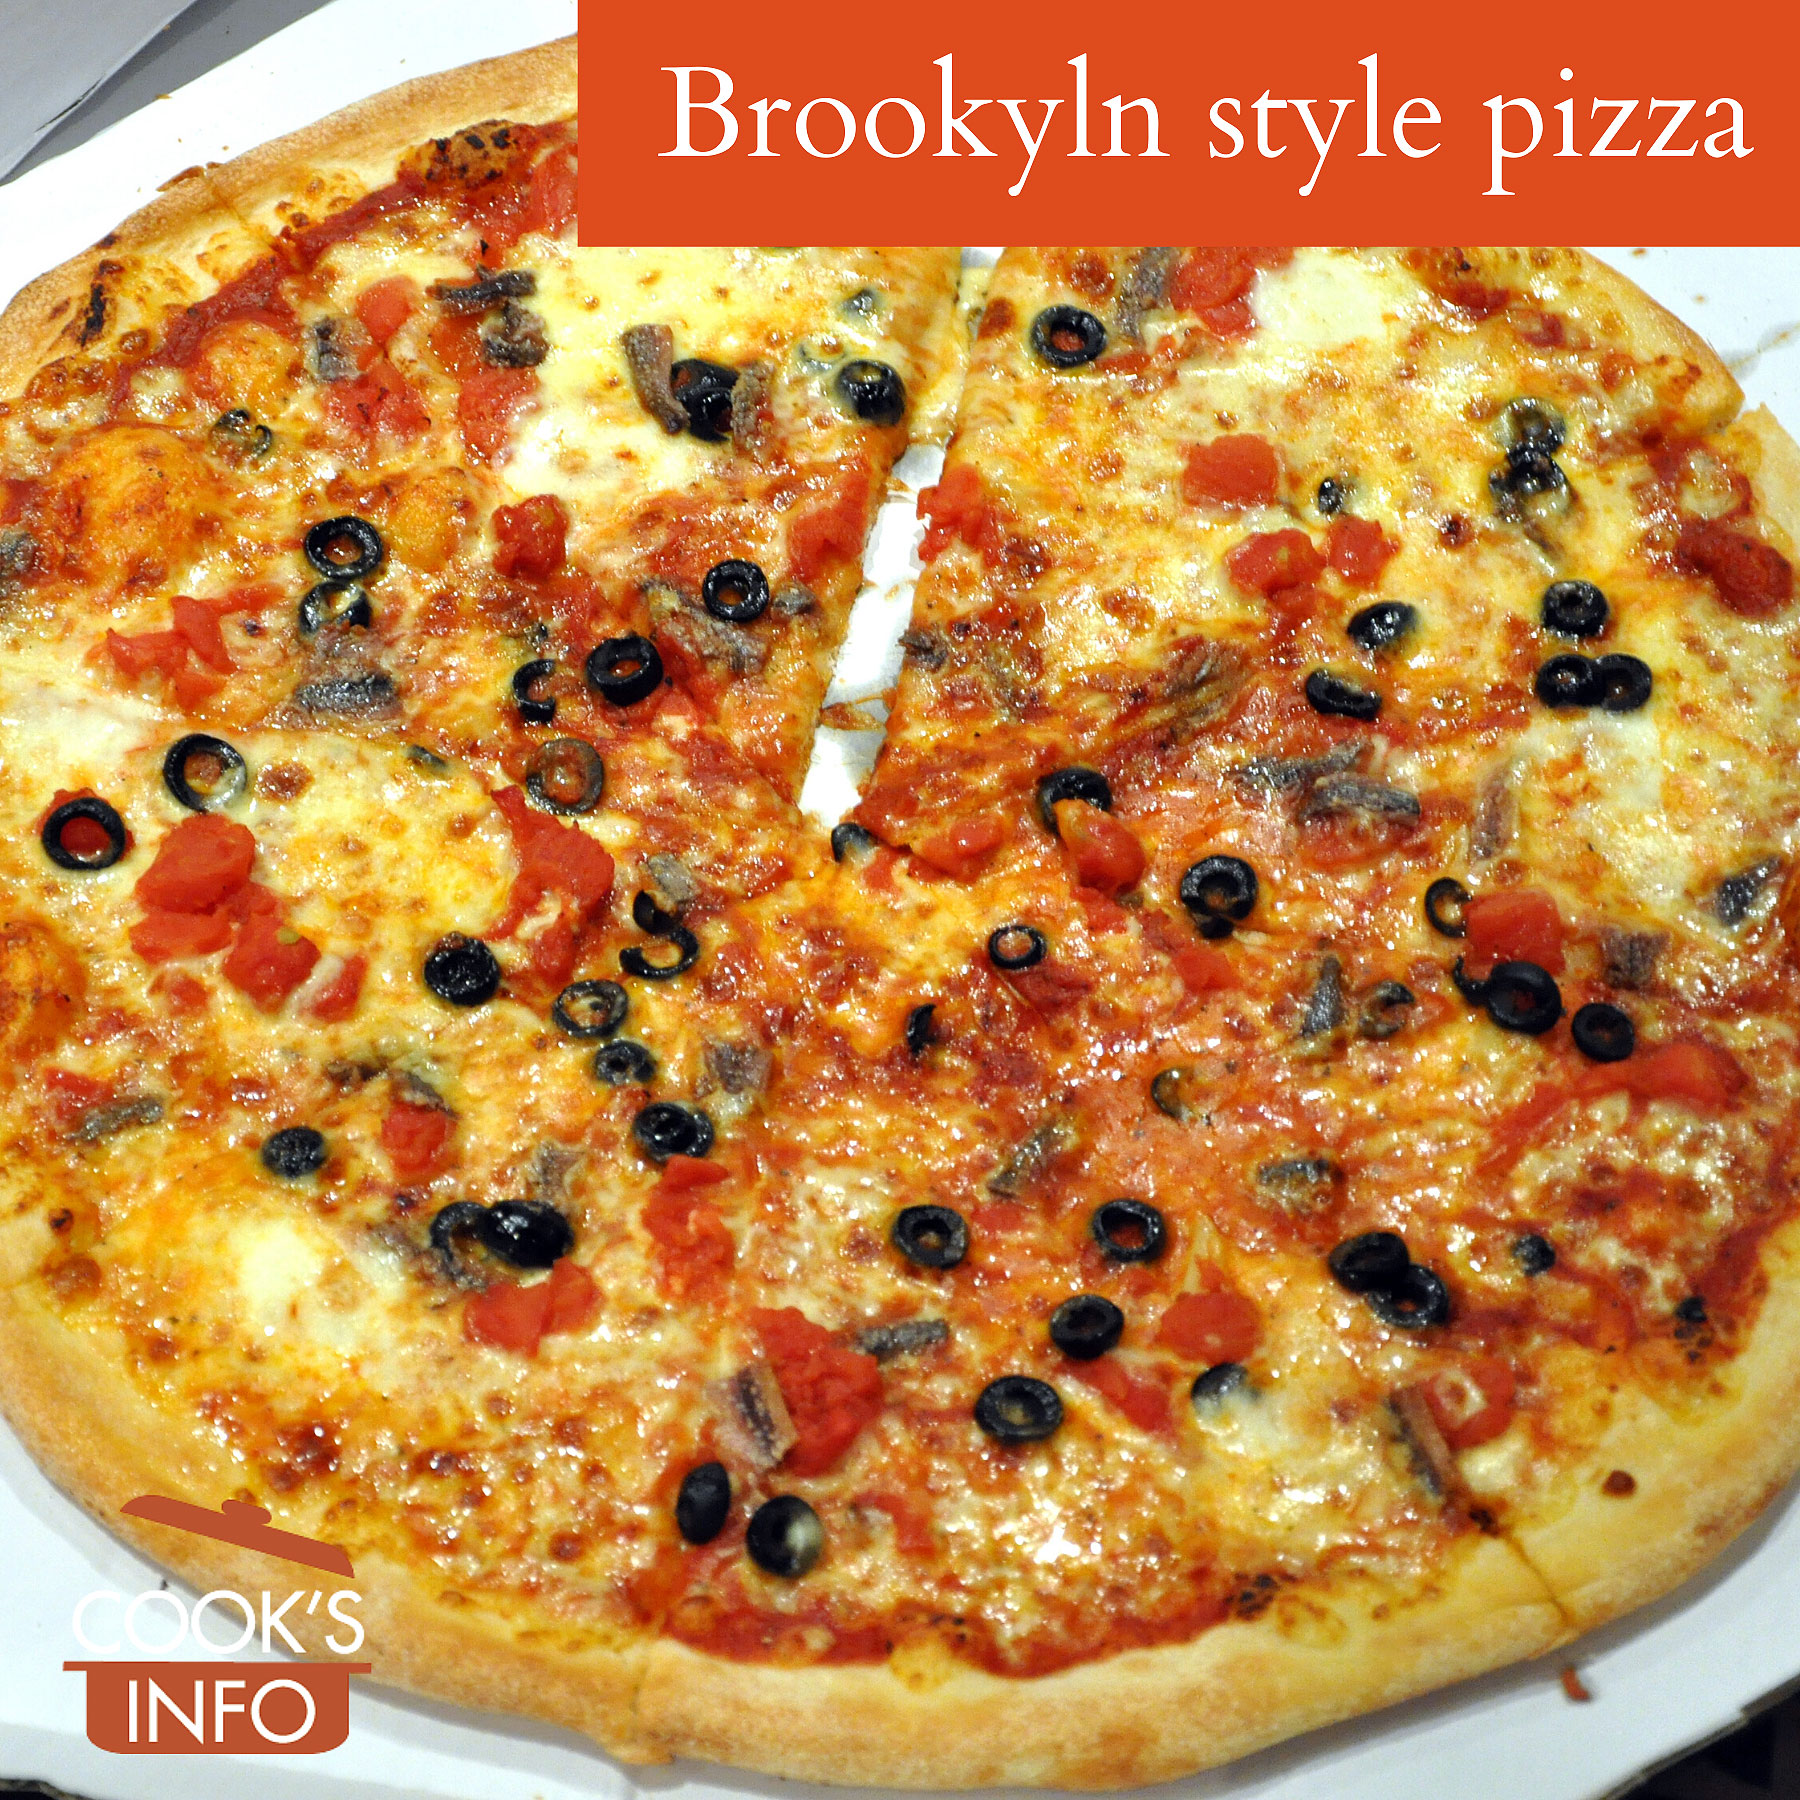 Brooklyn style pizza from Domino's